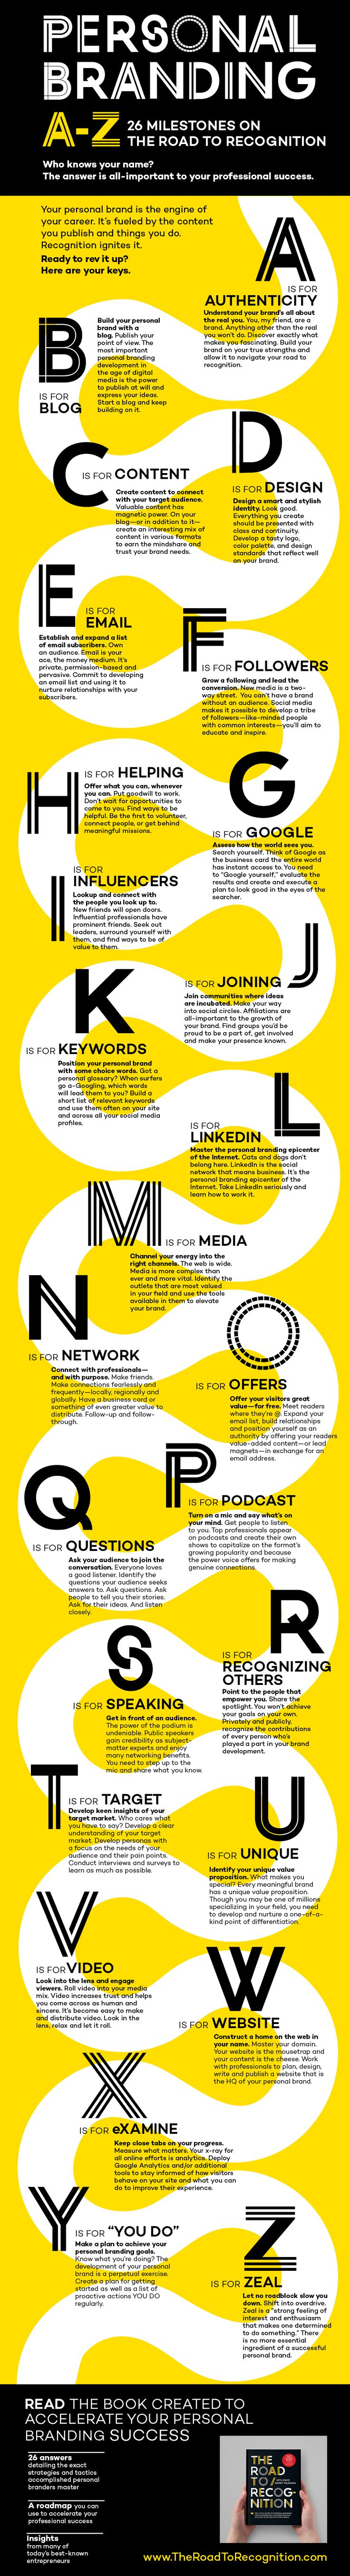 Personal Branding: The Long and Winding Road to Recognition [Infographic]